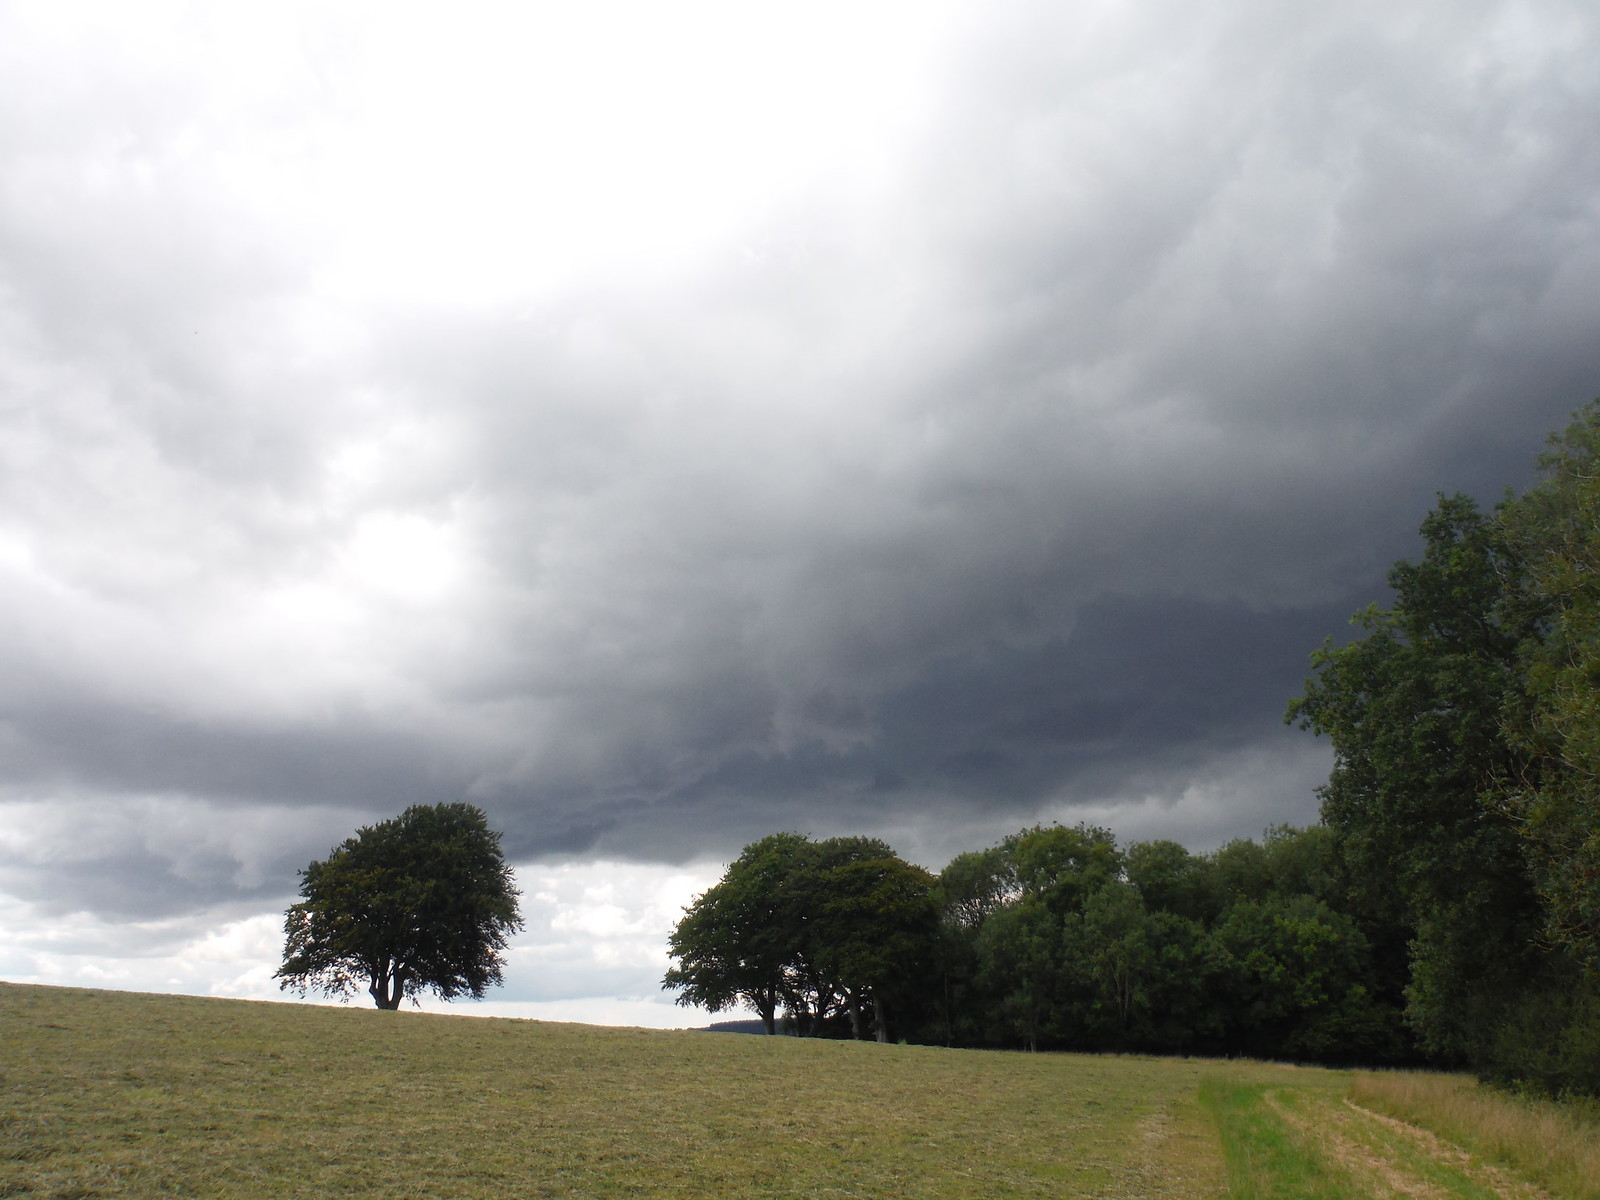 A Thunderstorm approaching East Dean SWC Walk 239 Halnaker to Chichester via Cass Sculpture Park and Goodwood